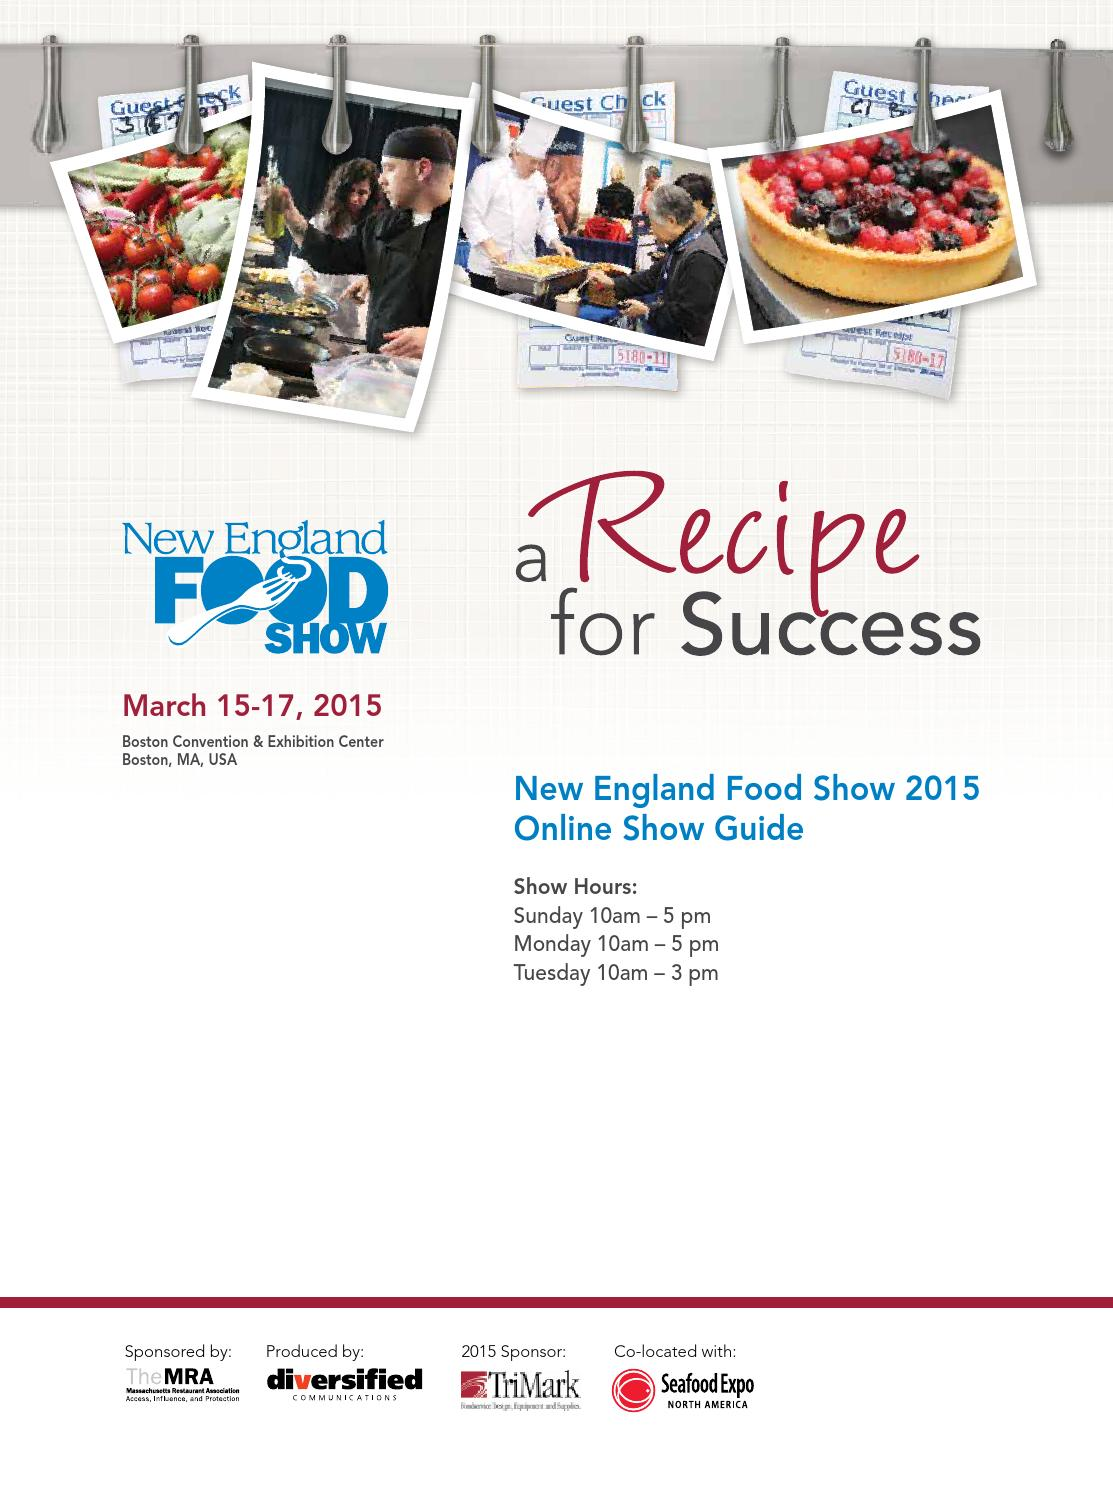 New England Food Show 2015 by Diversified Communications - issuu